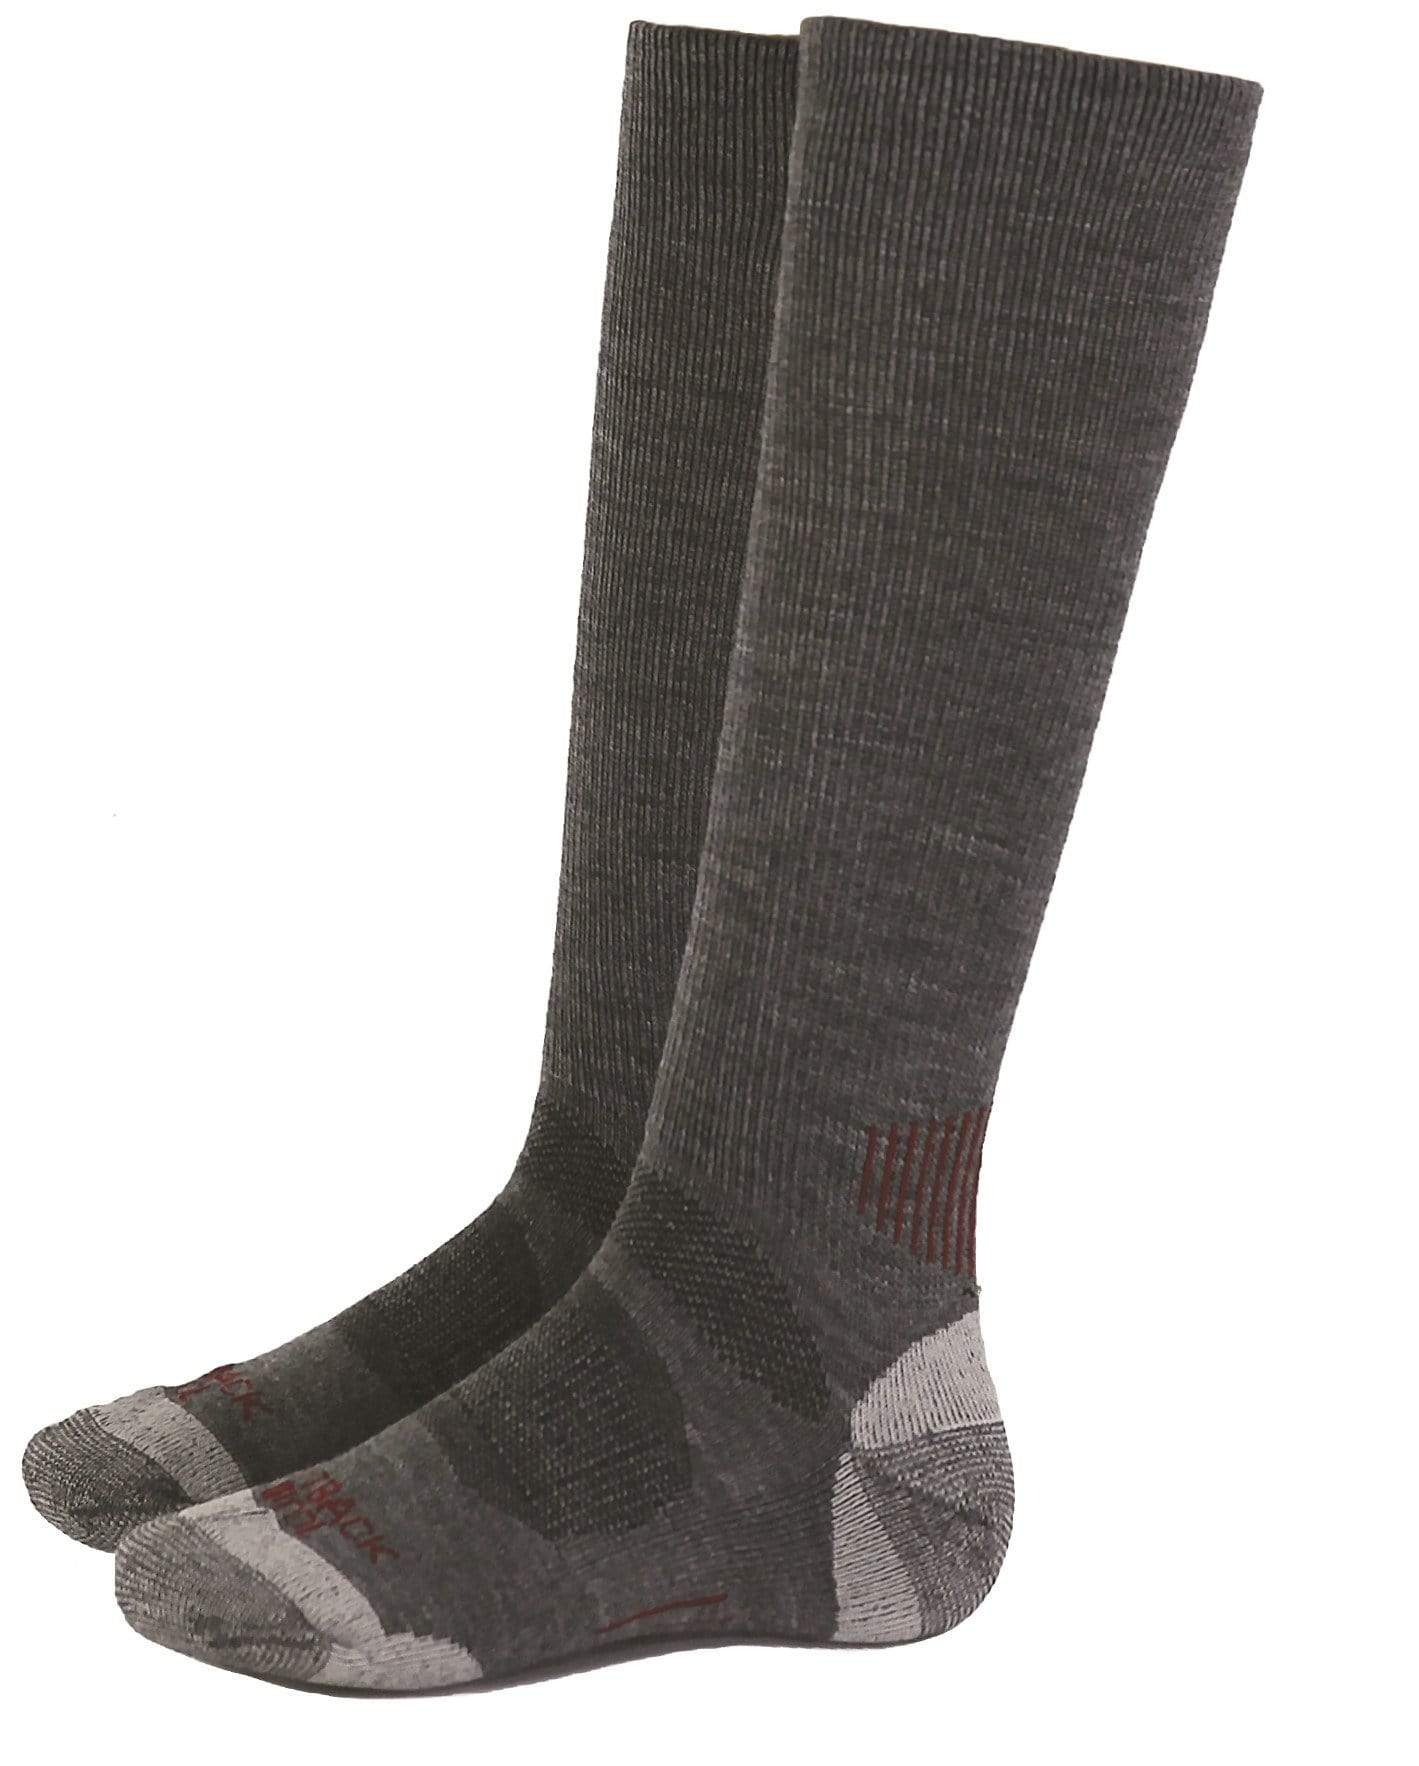 Outback Trading Company River Hills Sock